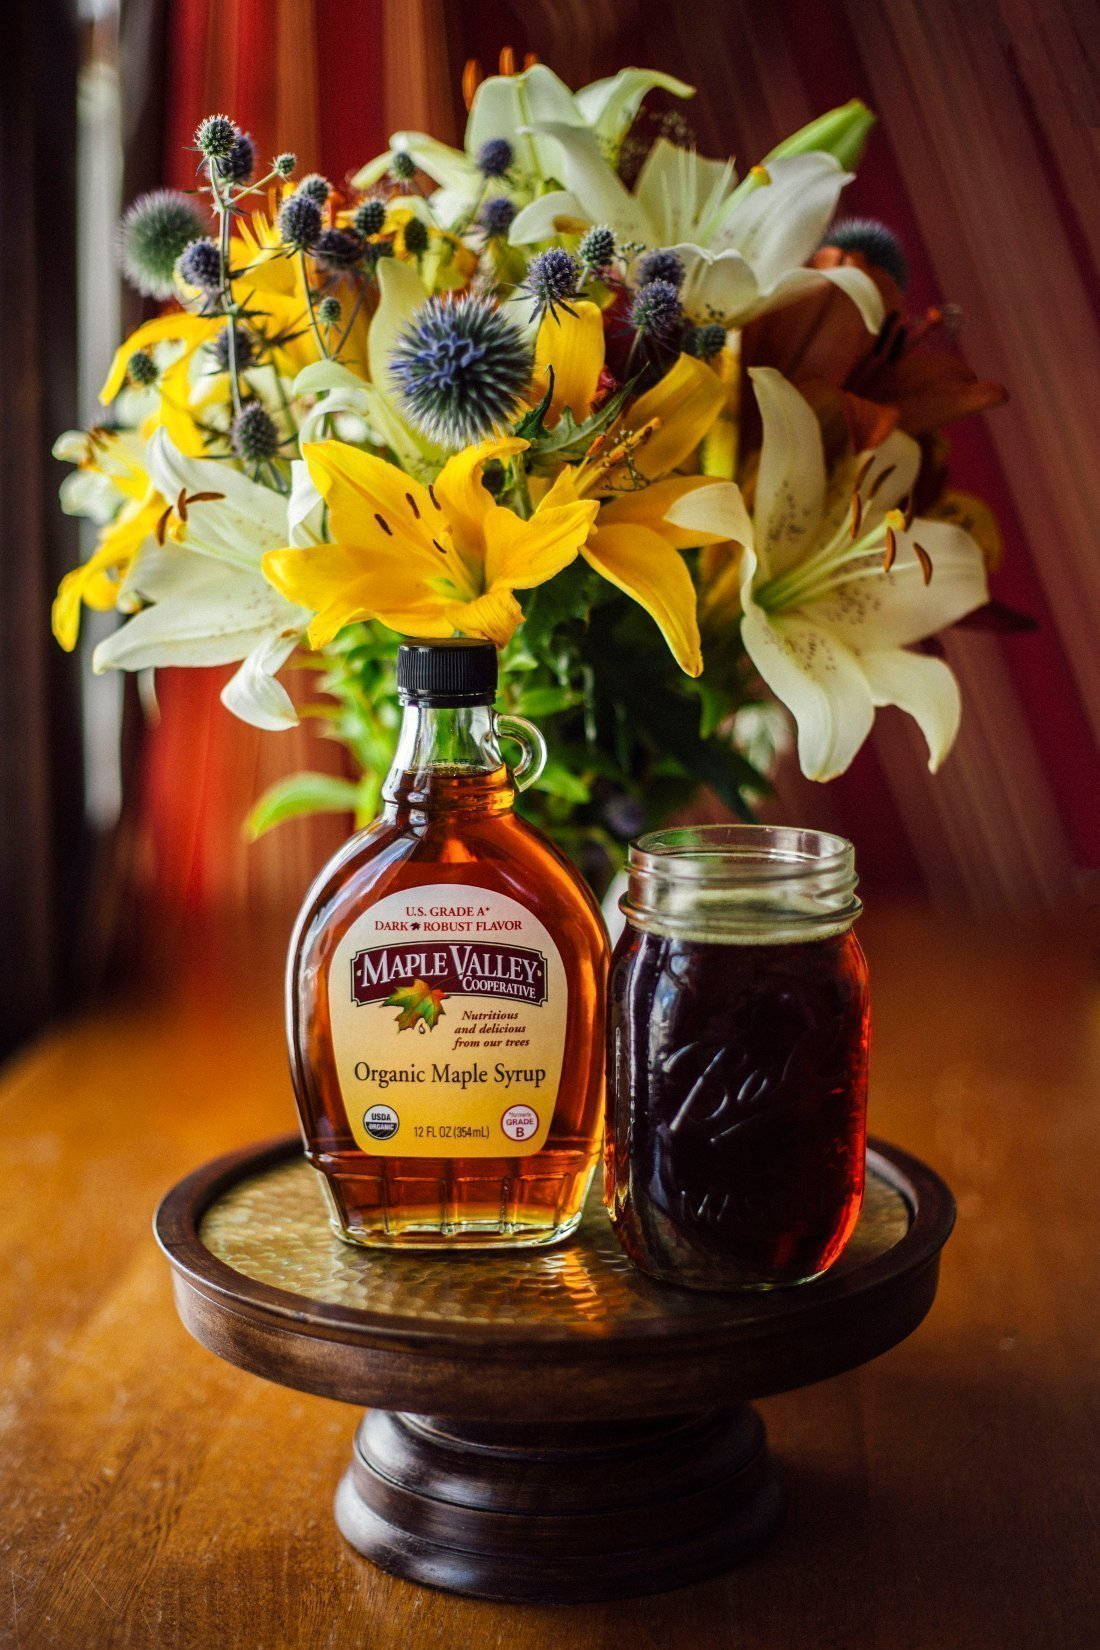 Maple Valley Syrup with flowers